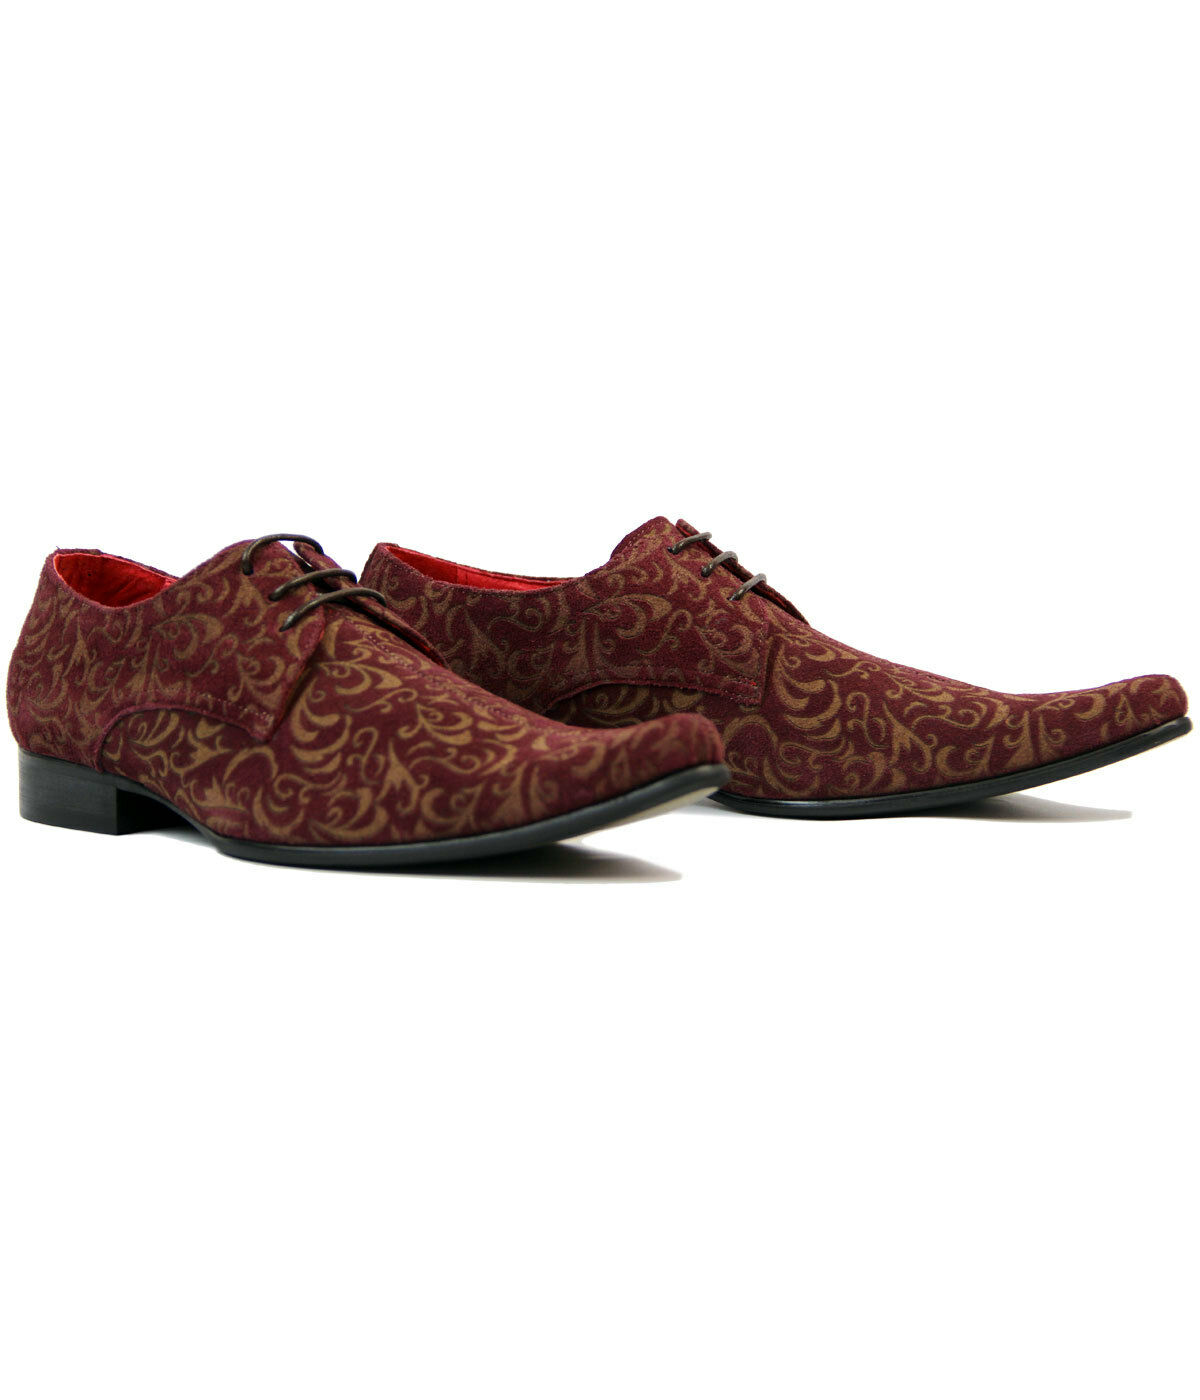 NEW MADCAP MOD SUEDE RETRO MOD SIXTIES PAISLEY SUEDE MOD SHOES Winklepickers 60s JAG WINE 0bbe3b